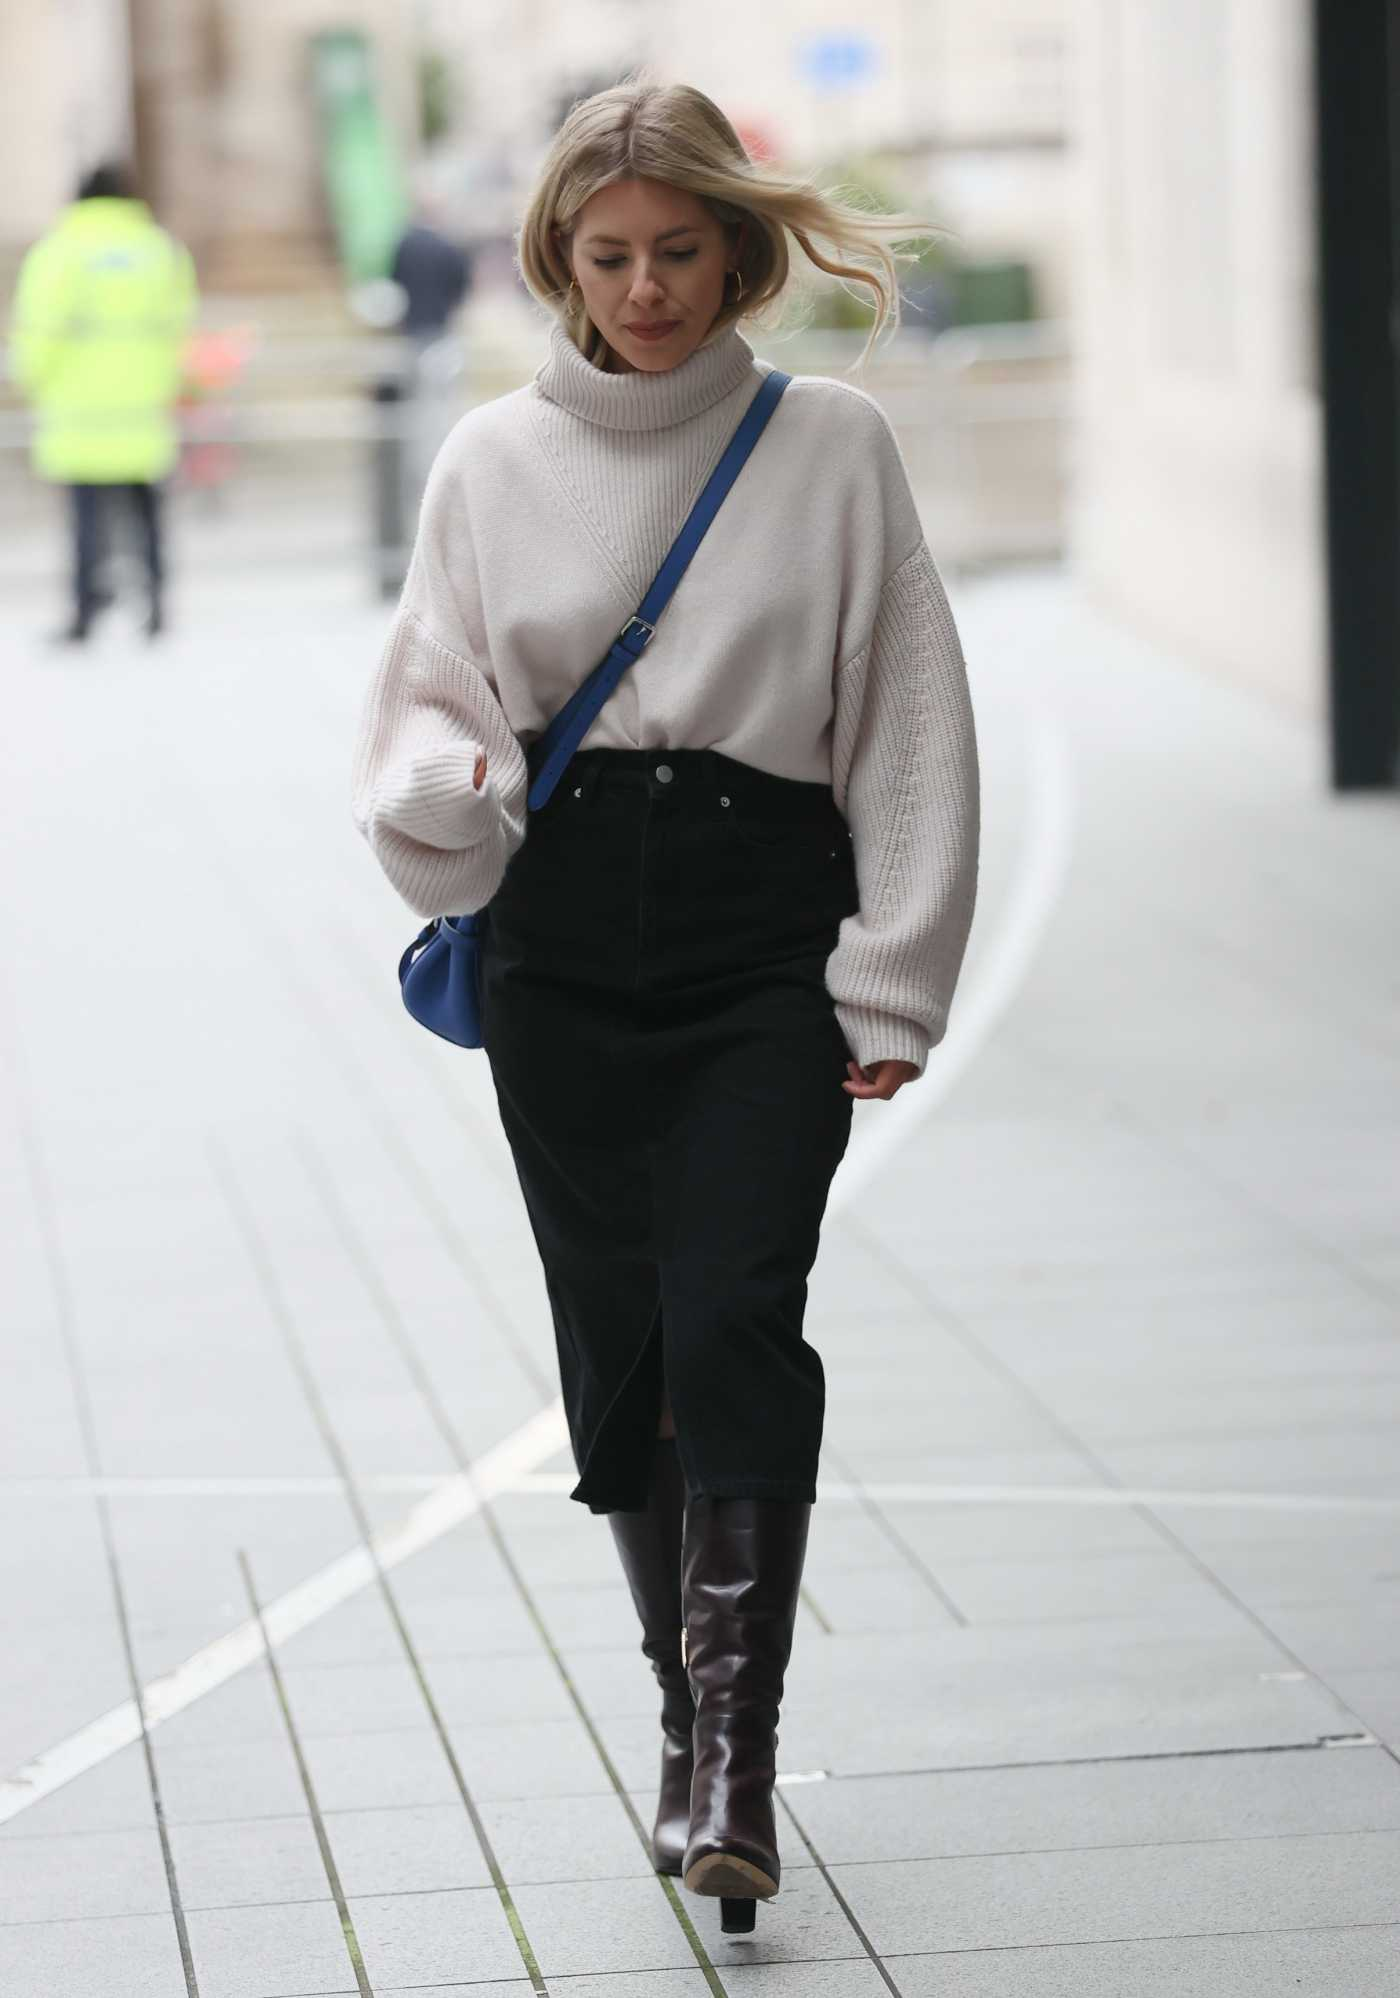 Mollie King in a Black Skirt Arrives at the BBC Radio 1 During the COVID-19 Lockdown in London 02/06/2021